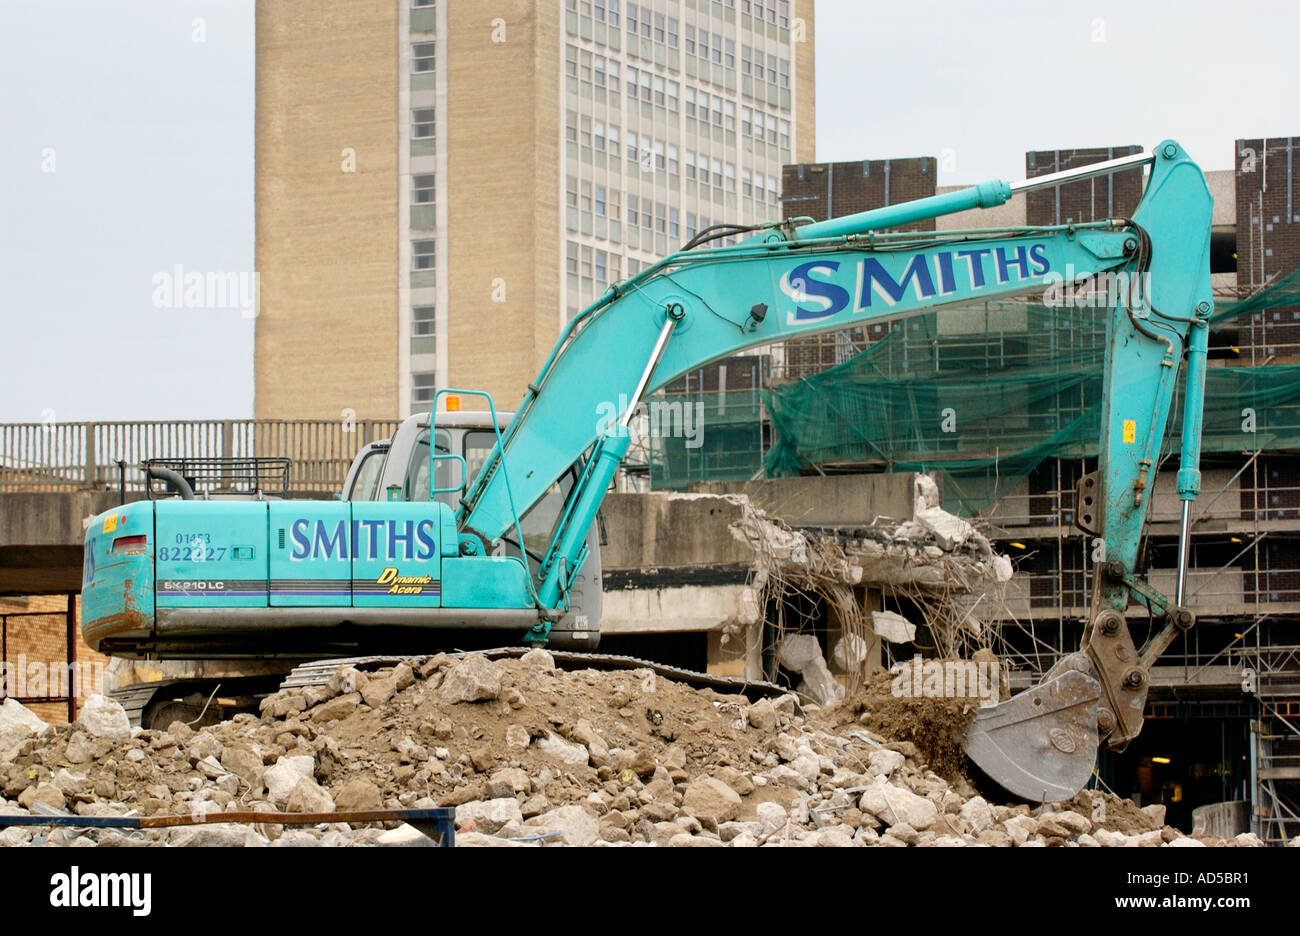 Former car park being demolished by excavator to develop a new shopping centre in Newport Gwent South Wales UK - Stock Image